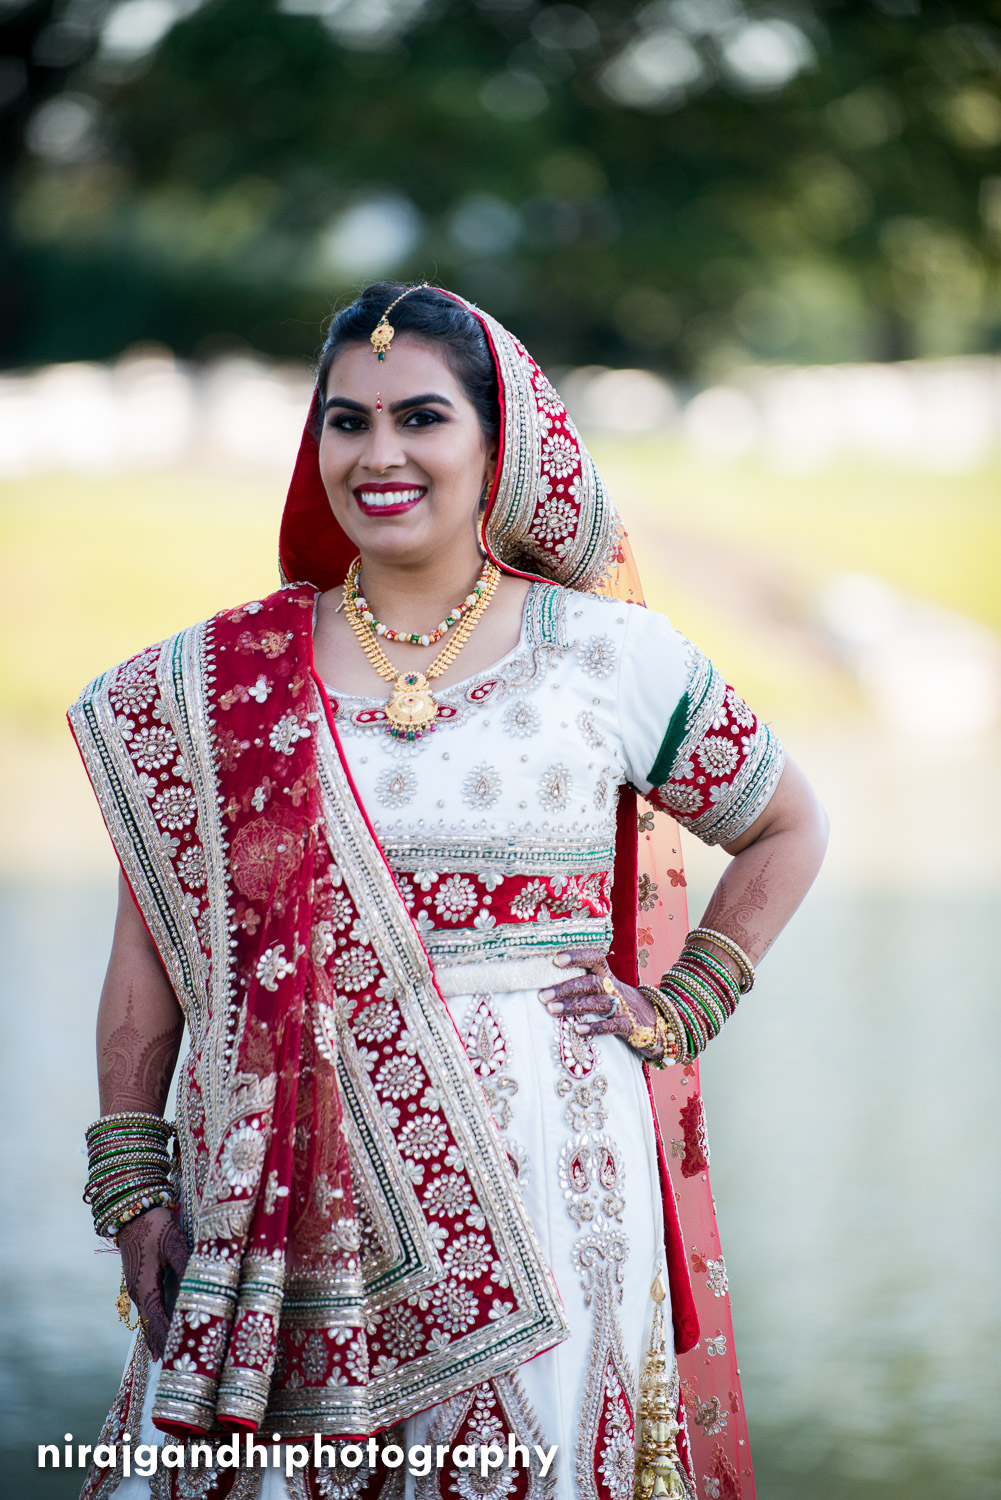 Arpita + Neel's Wedding-136.jpg